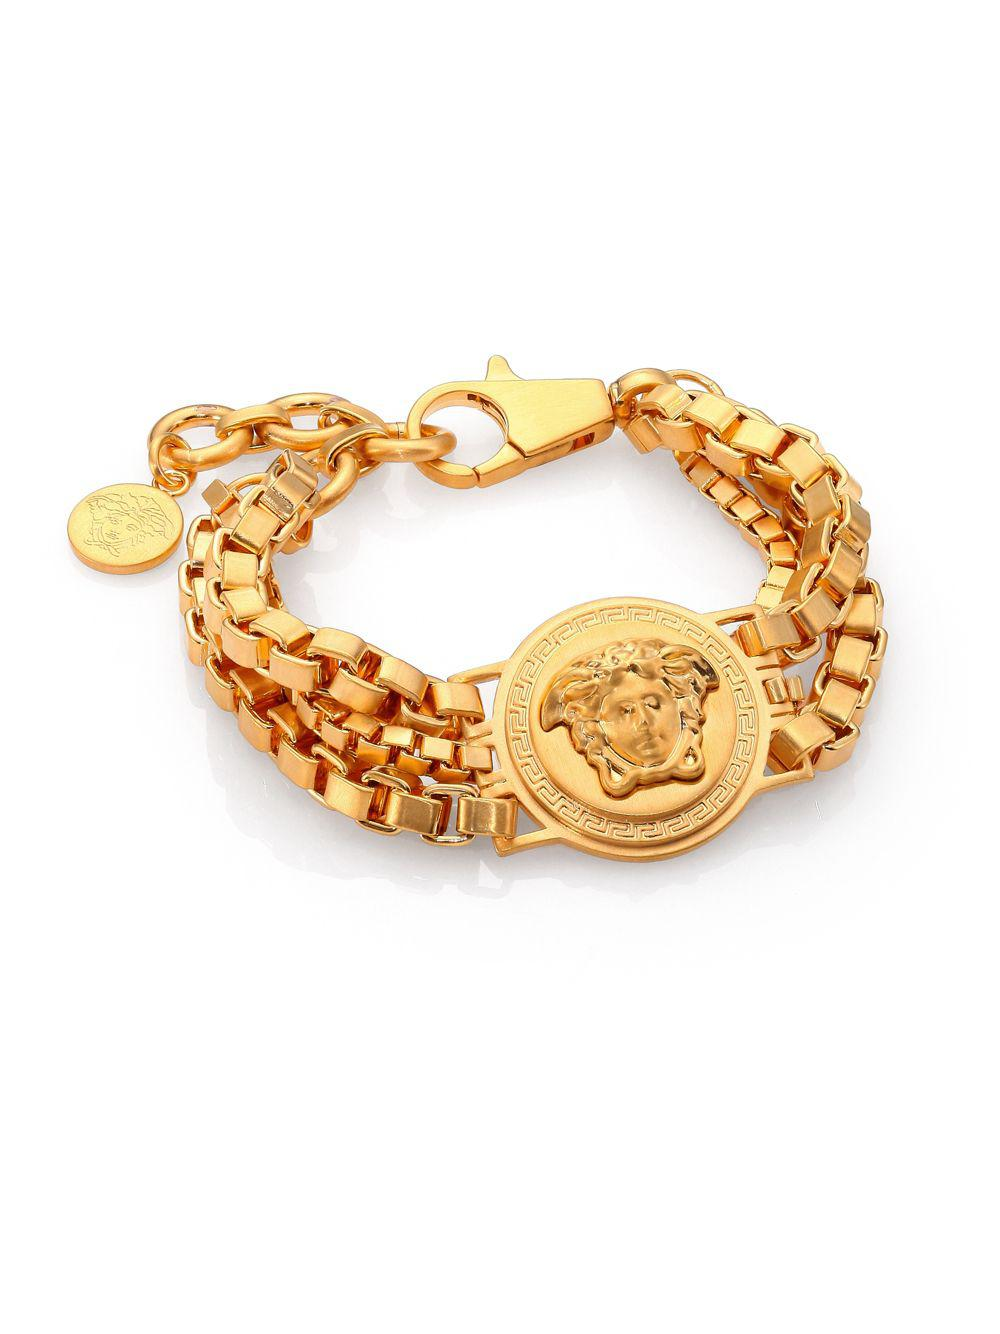 728e43e2b5be Lyst - Versace Bijoux Triple Chain Medusa Bracelet in Metallic